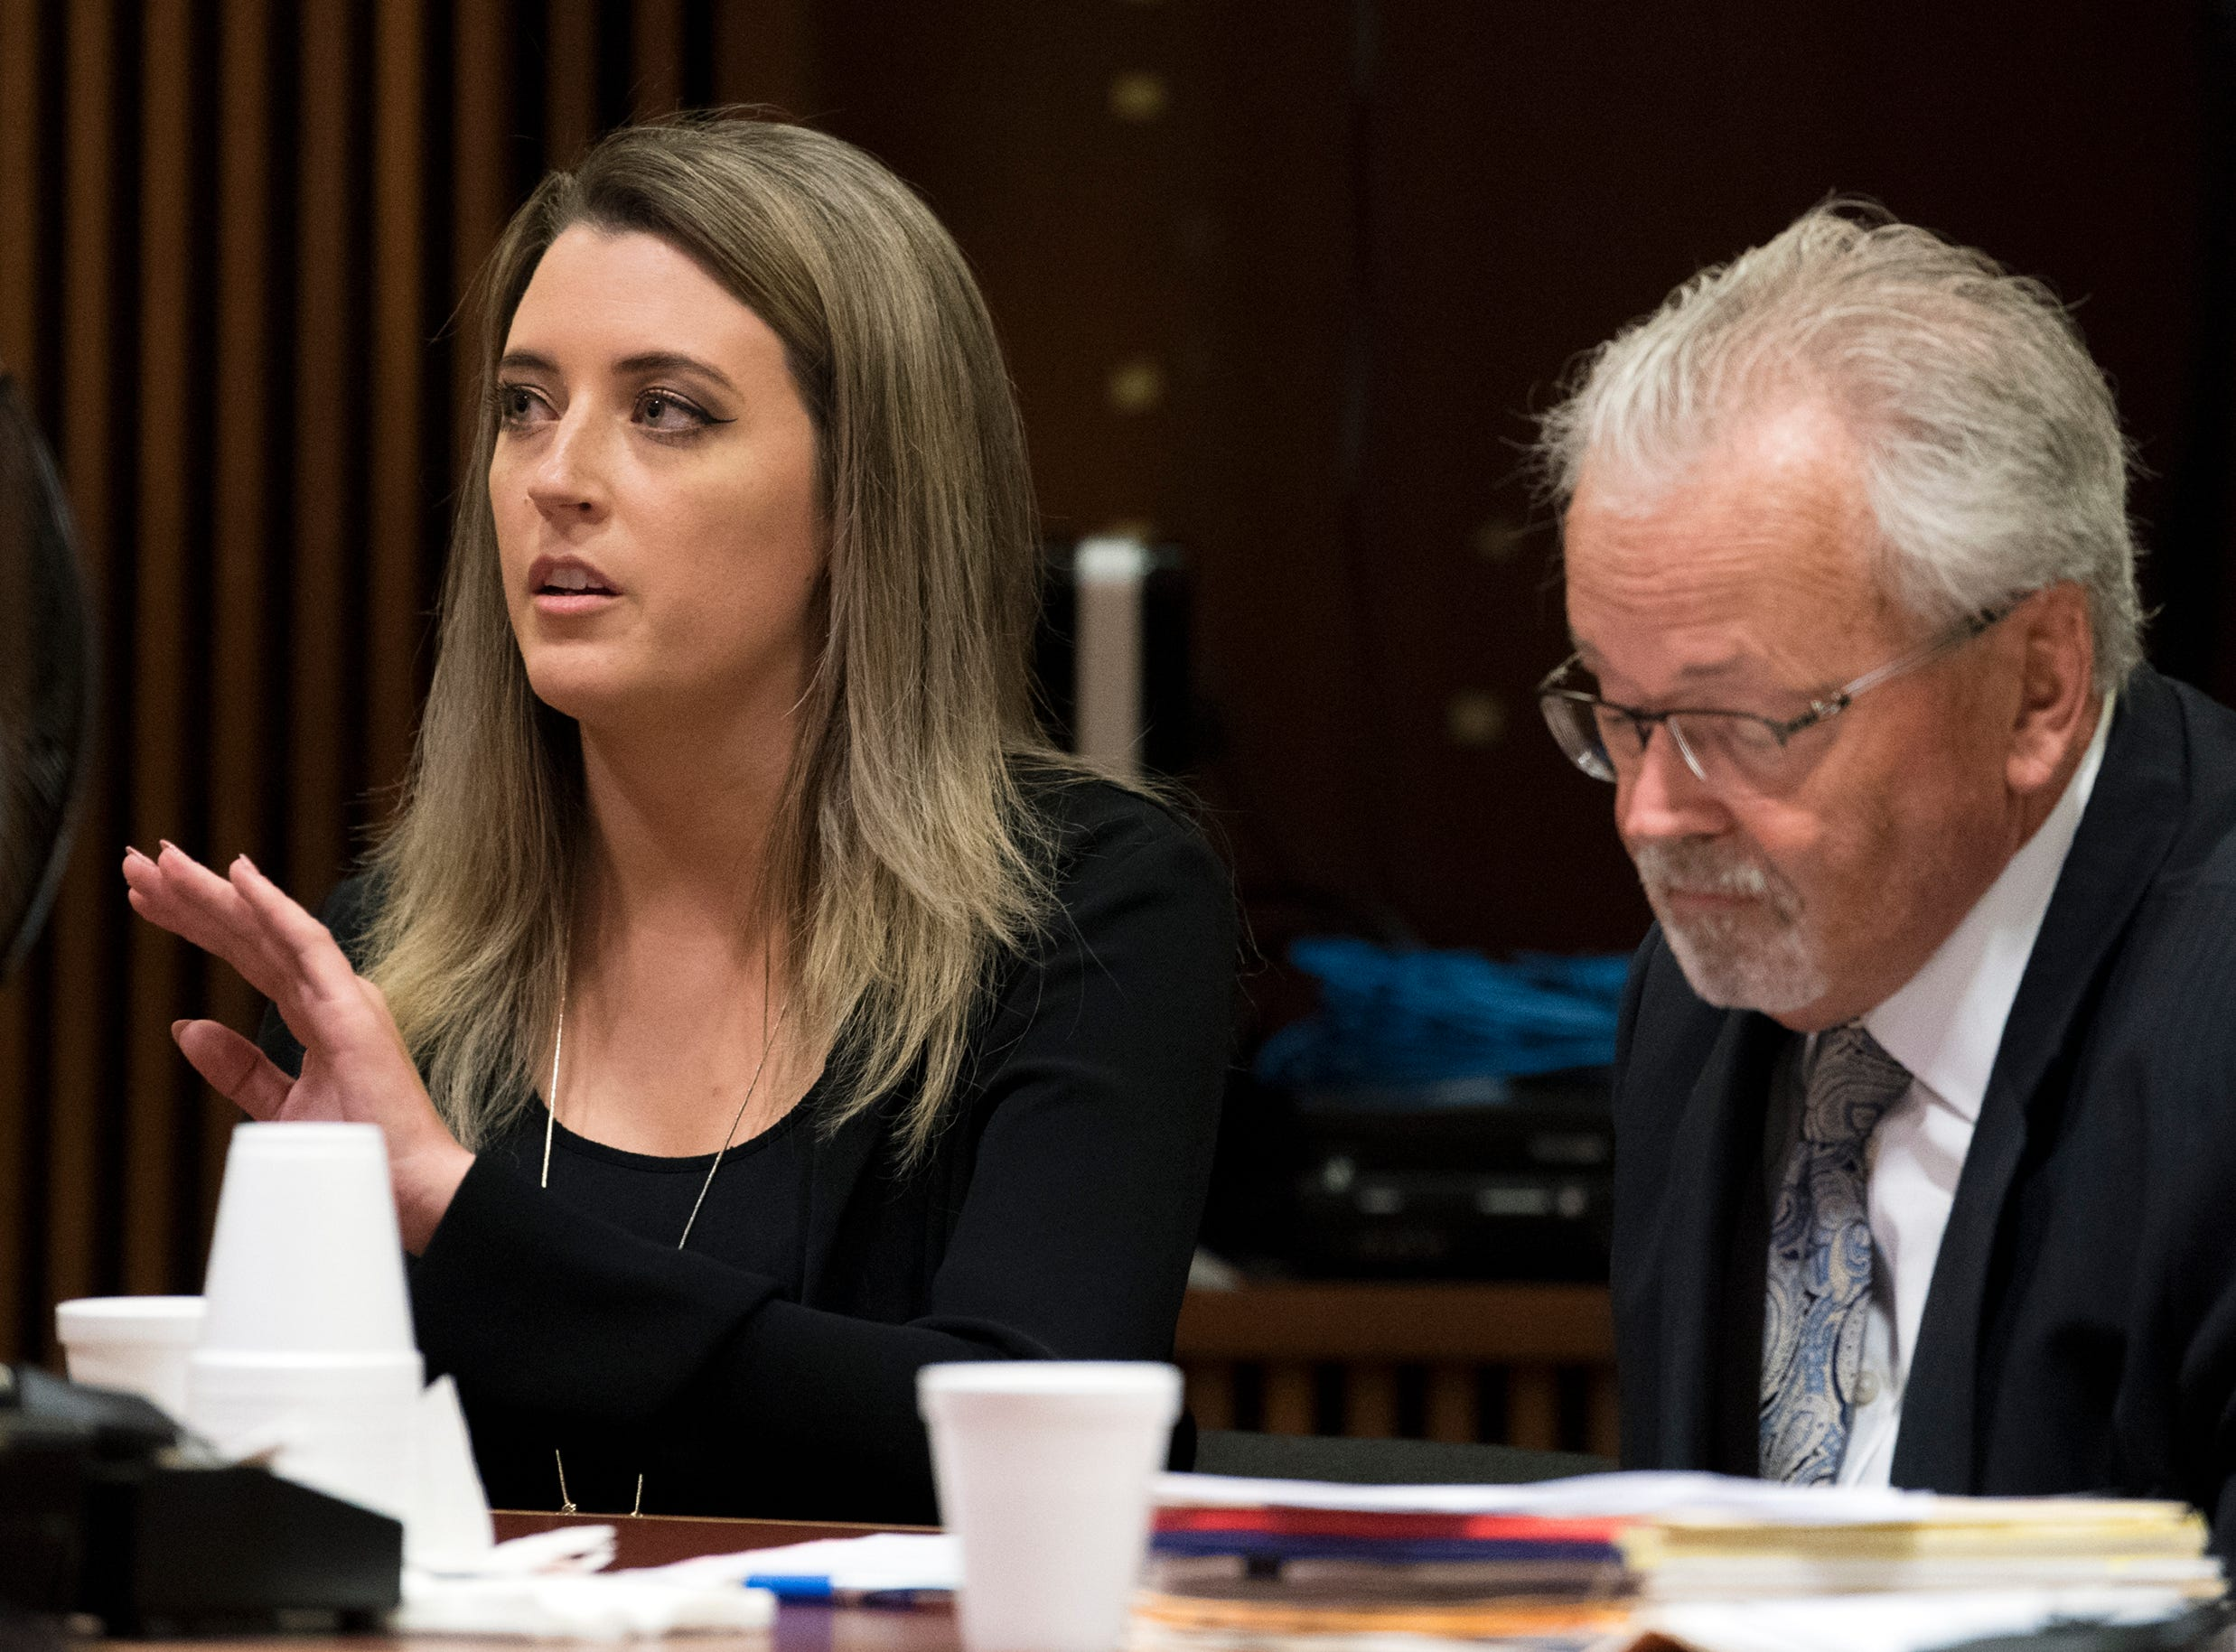 Kate McClure appears in court Monday, April 15, 2019 at Burlington County Superior Court in Mount Holly, N.J. McClure pleaded guilty to a state charge in a 'good Samaritan' scam of GoFundMe donors and faces four years in jail.